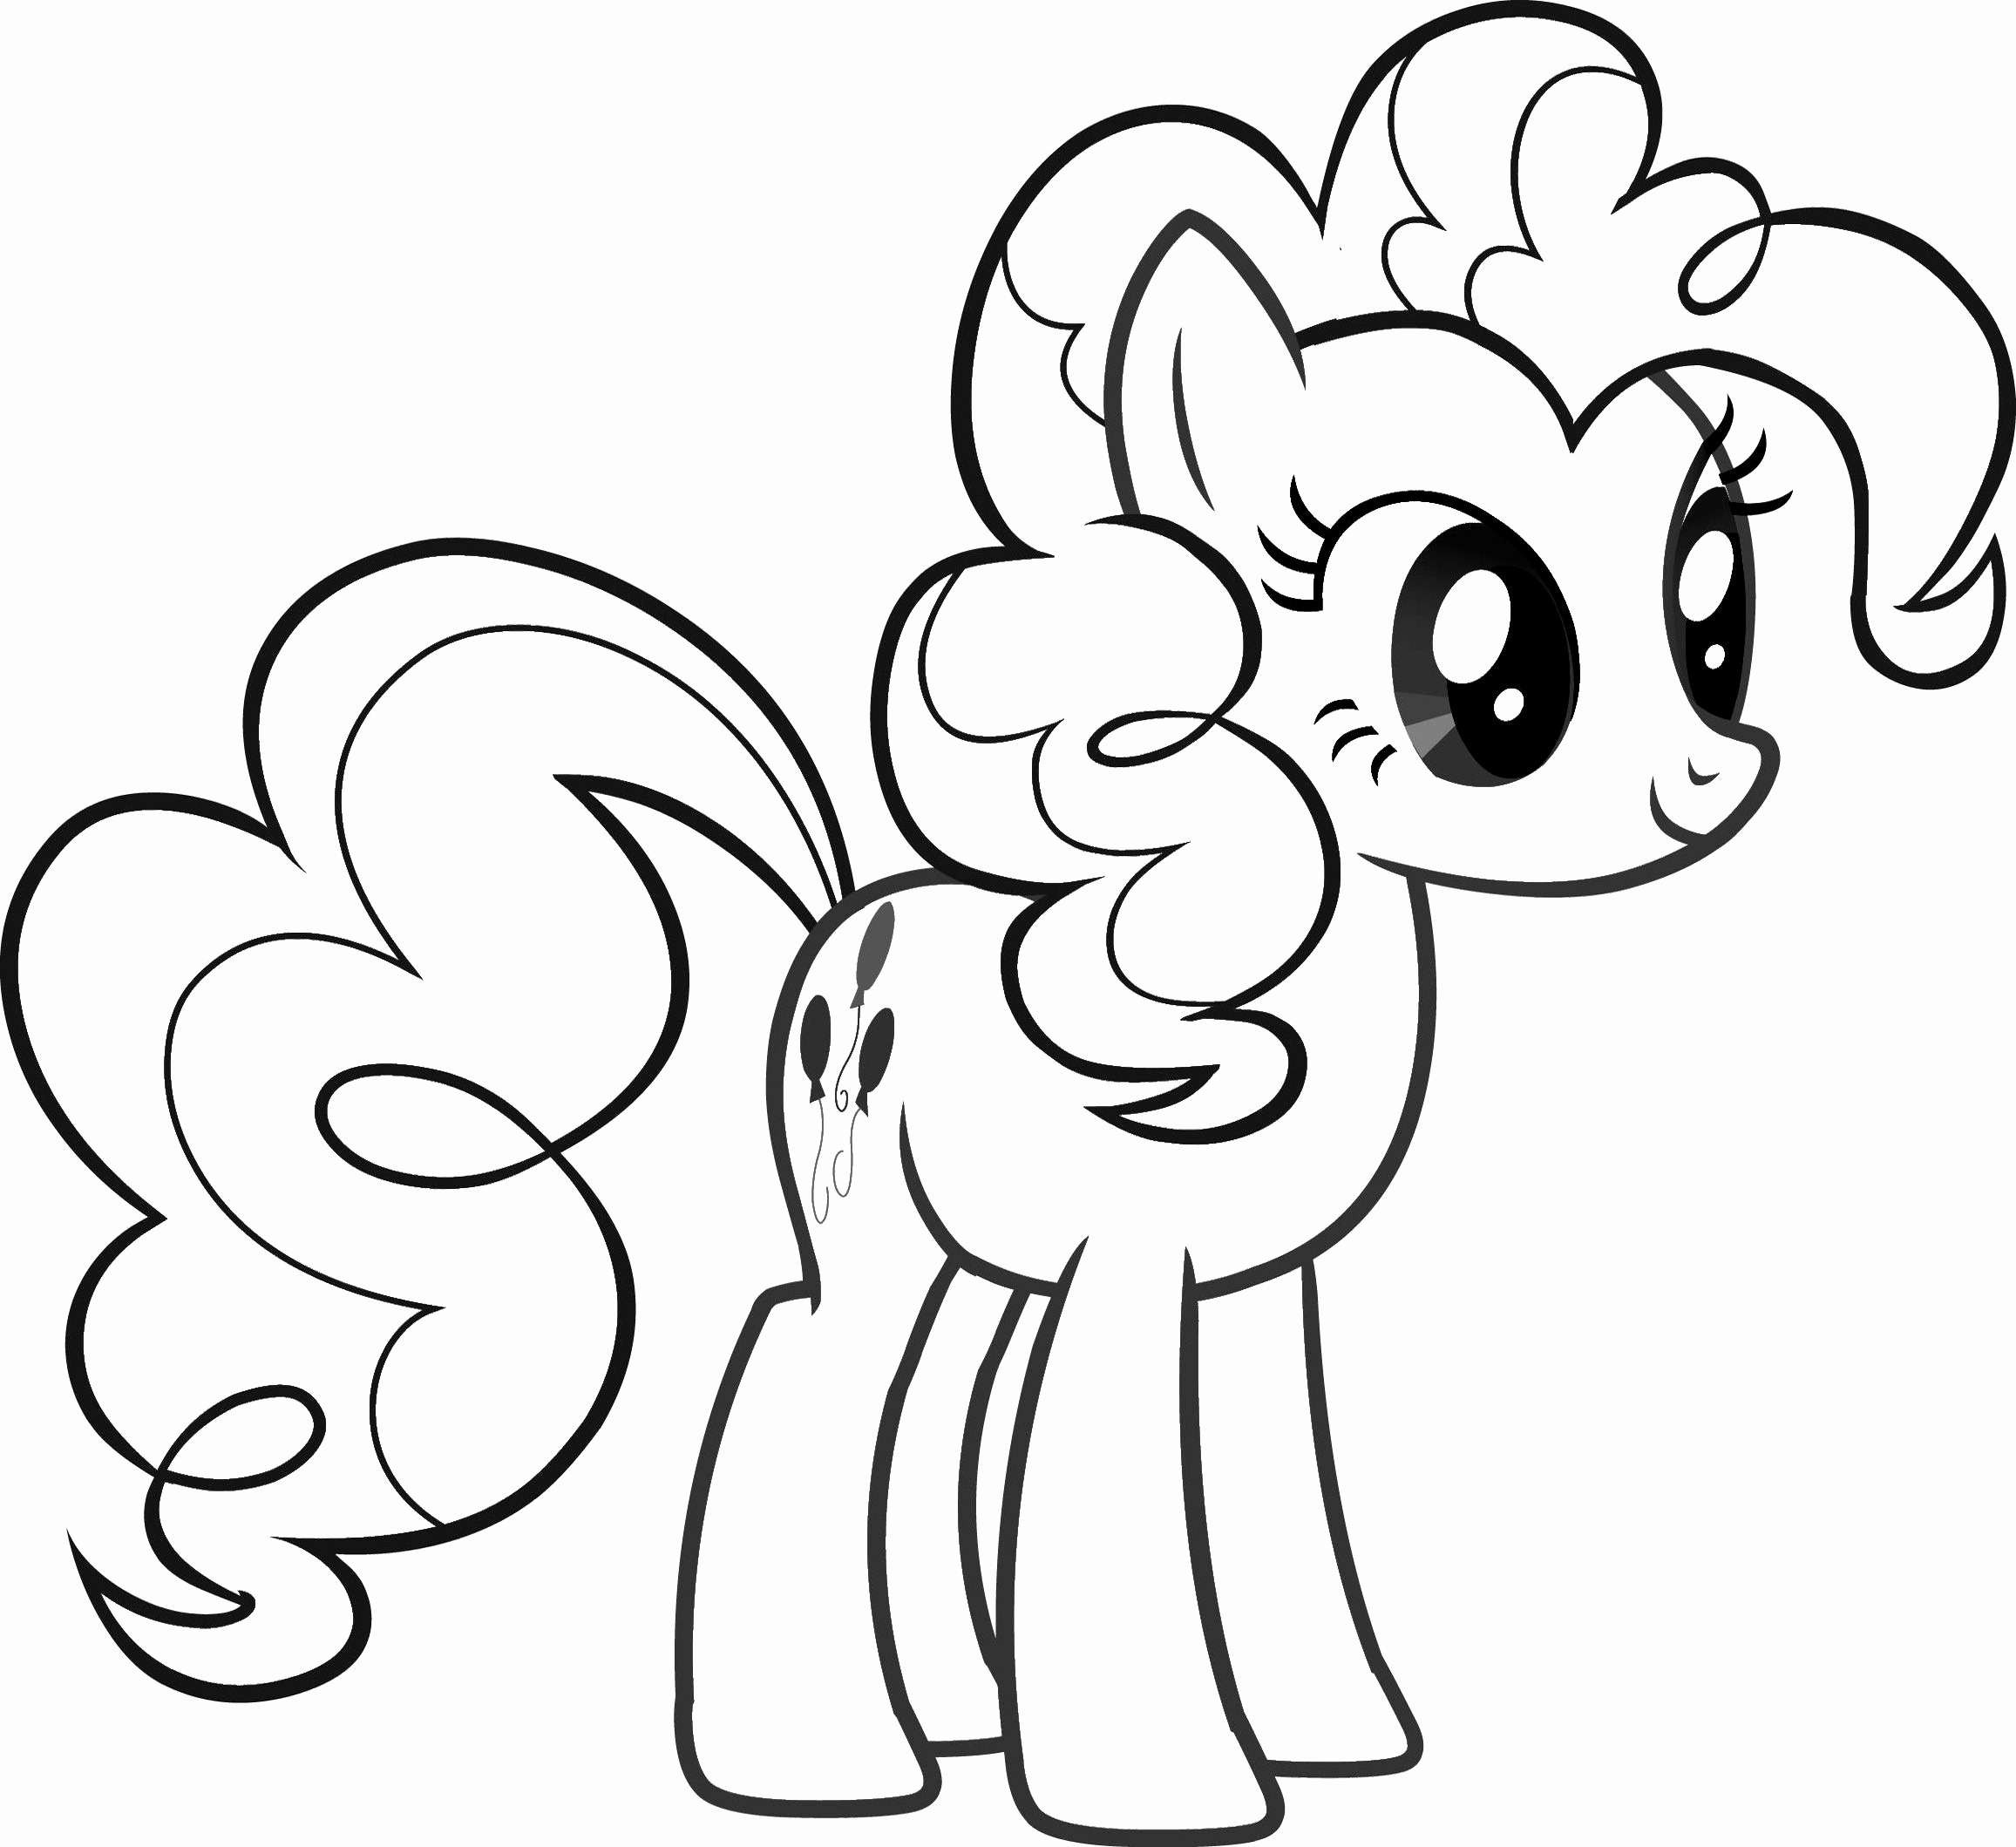 My Little Pony Ausmalbild Genial My Little Pony Coloring Pages Applejack Equestria Girls Free My Stock